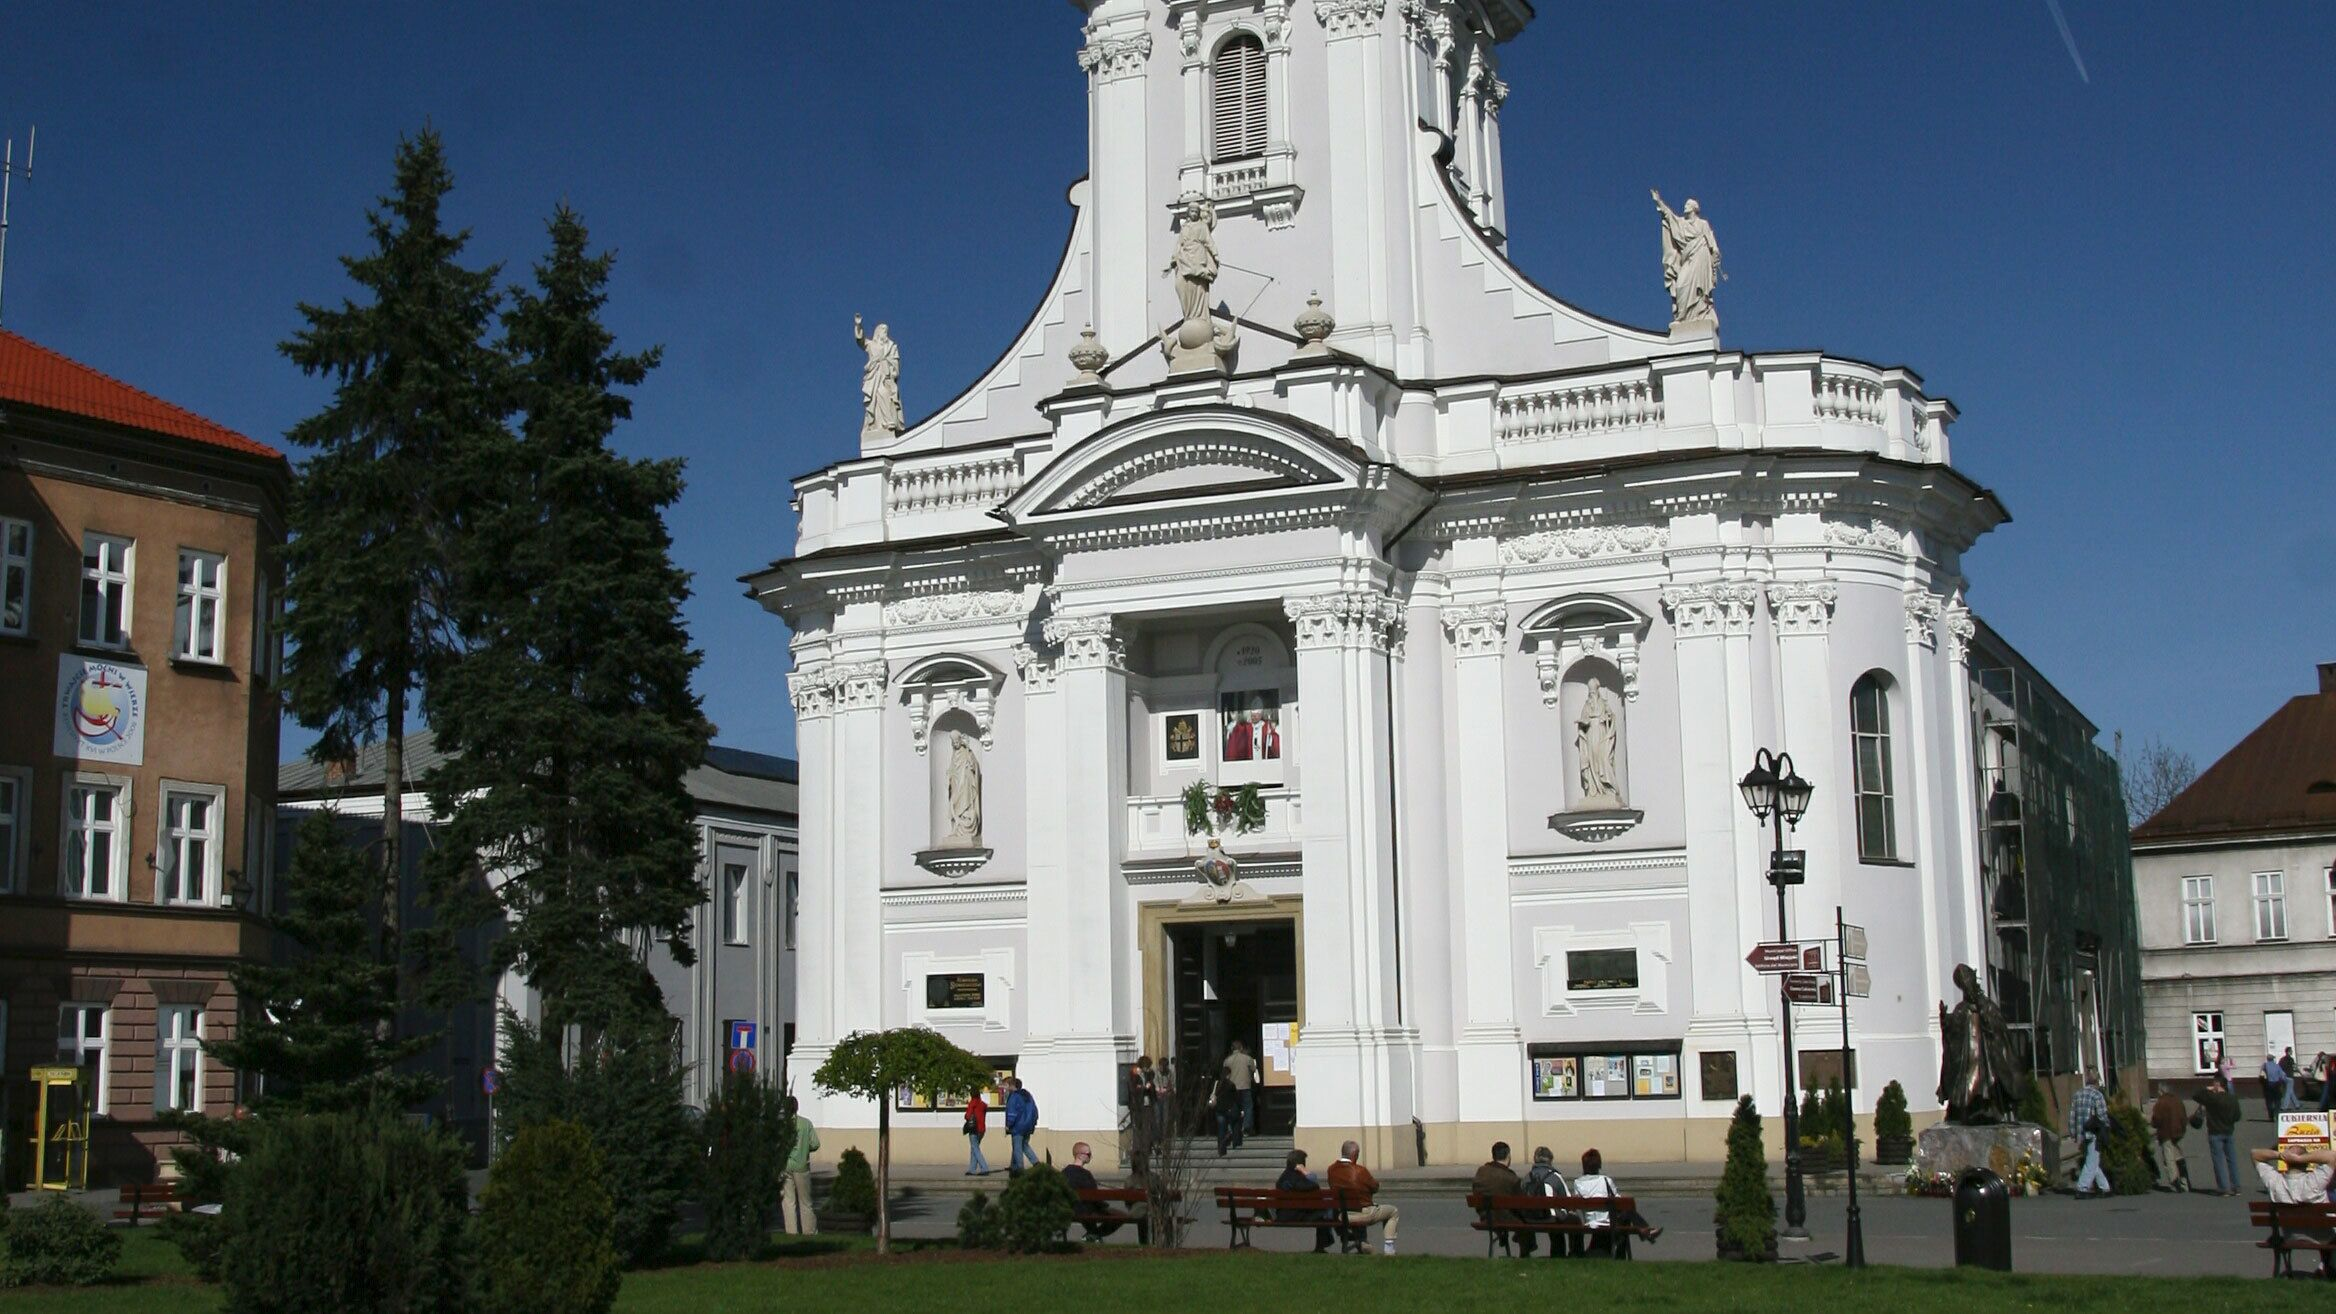 Close view of the Basilica of the Presentation of the Blessed Virgin Mary in Poland